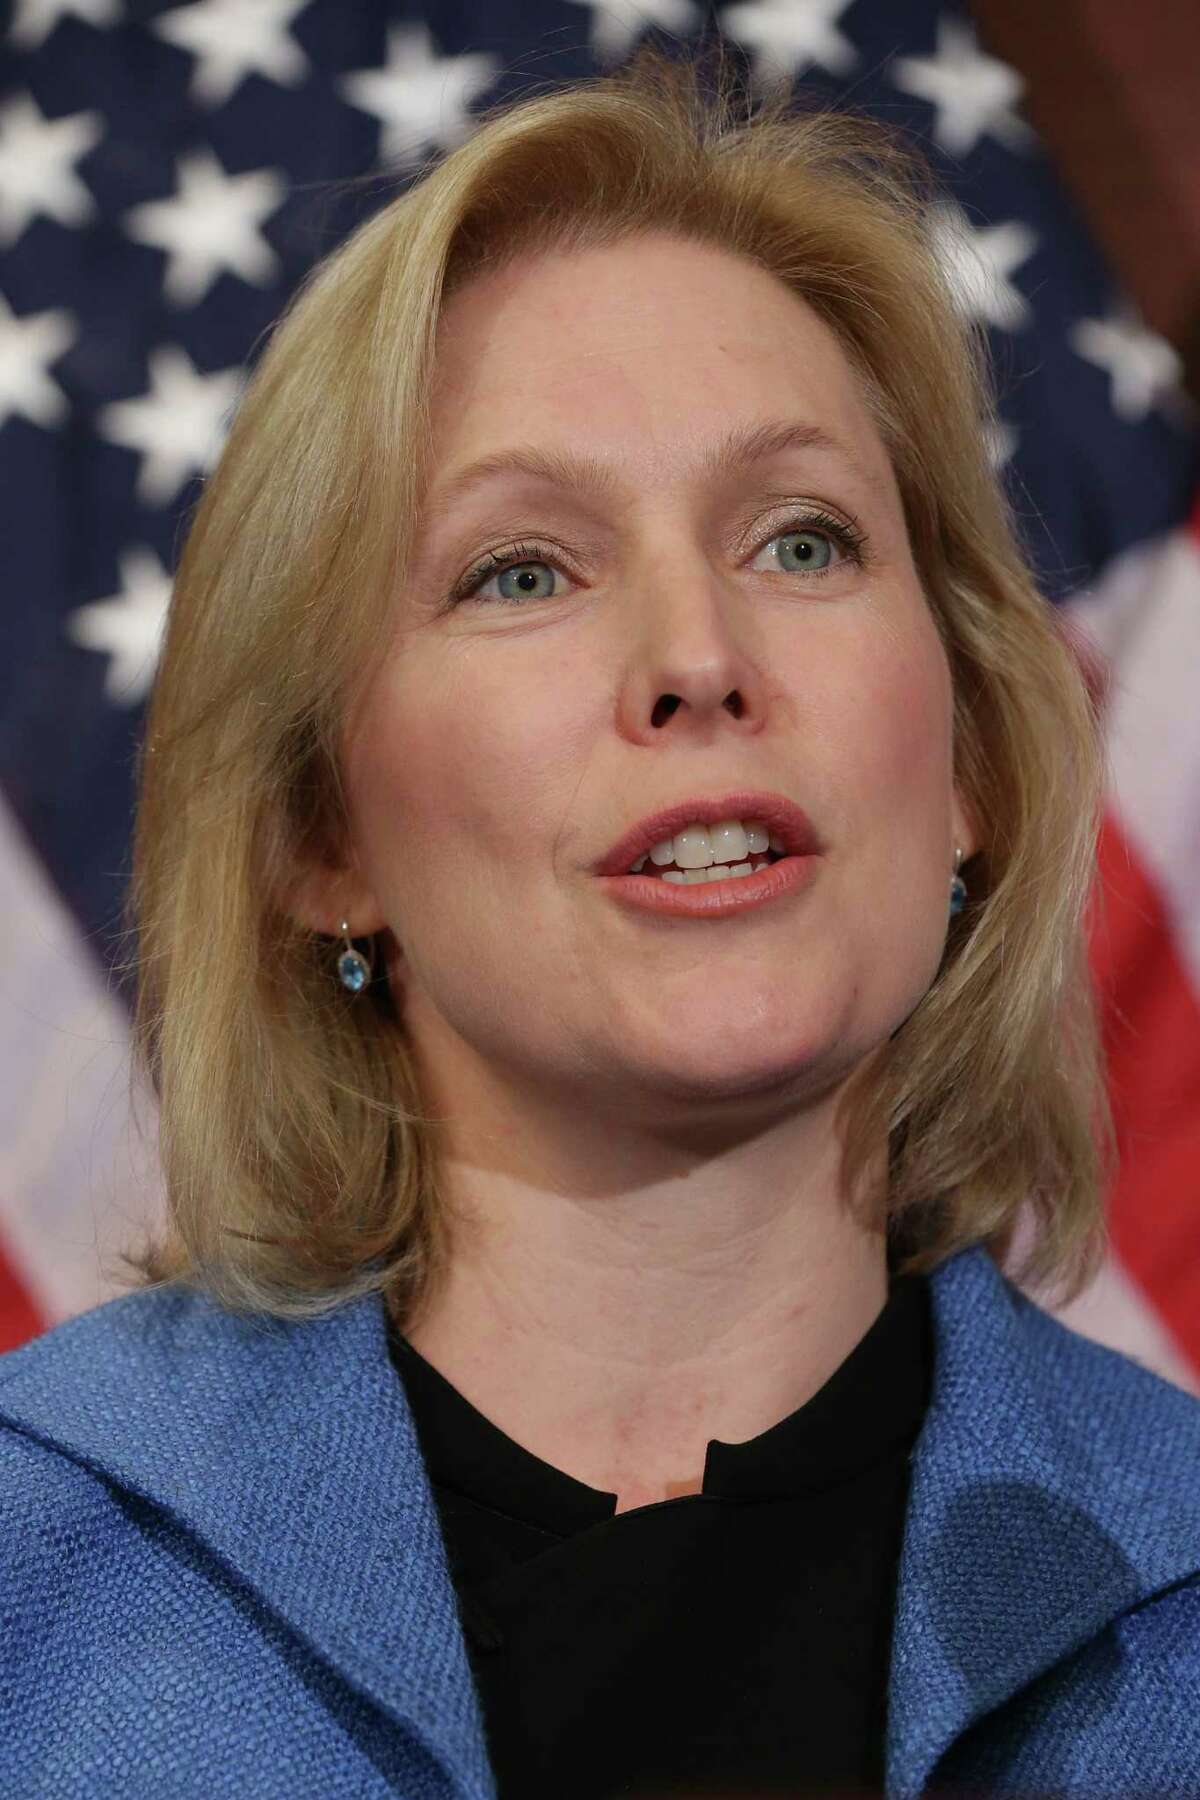 WASHINGTON, DC - JULY 30: Sen. Kristen Gillibrand (D-NY) participates in a news conference about new legislation aimed at curbing sexual assults on college and university campuses at the U.S. Capitol Visitors Center July 30, 2014 in Washington, DC. With strong bipartisan support in the Senate, the bill would require schools to make public the result of anonymous surveys about campus assaults and impose significant financial burdens on universities that fail to comply with some of the law's requirements. (Photo by Chip Somodevilla/Getty Images)